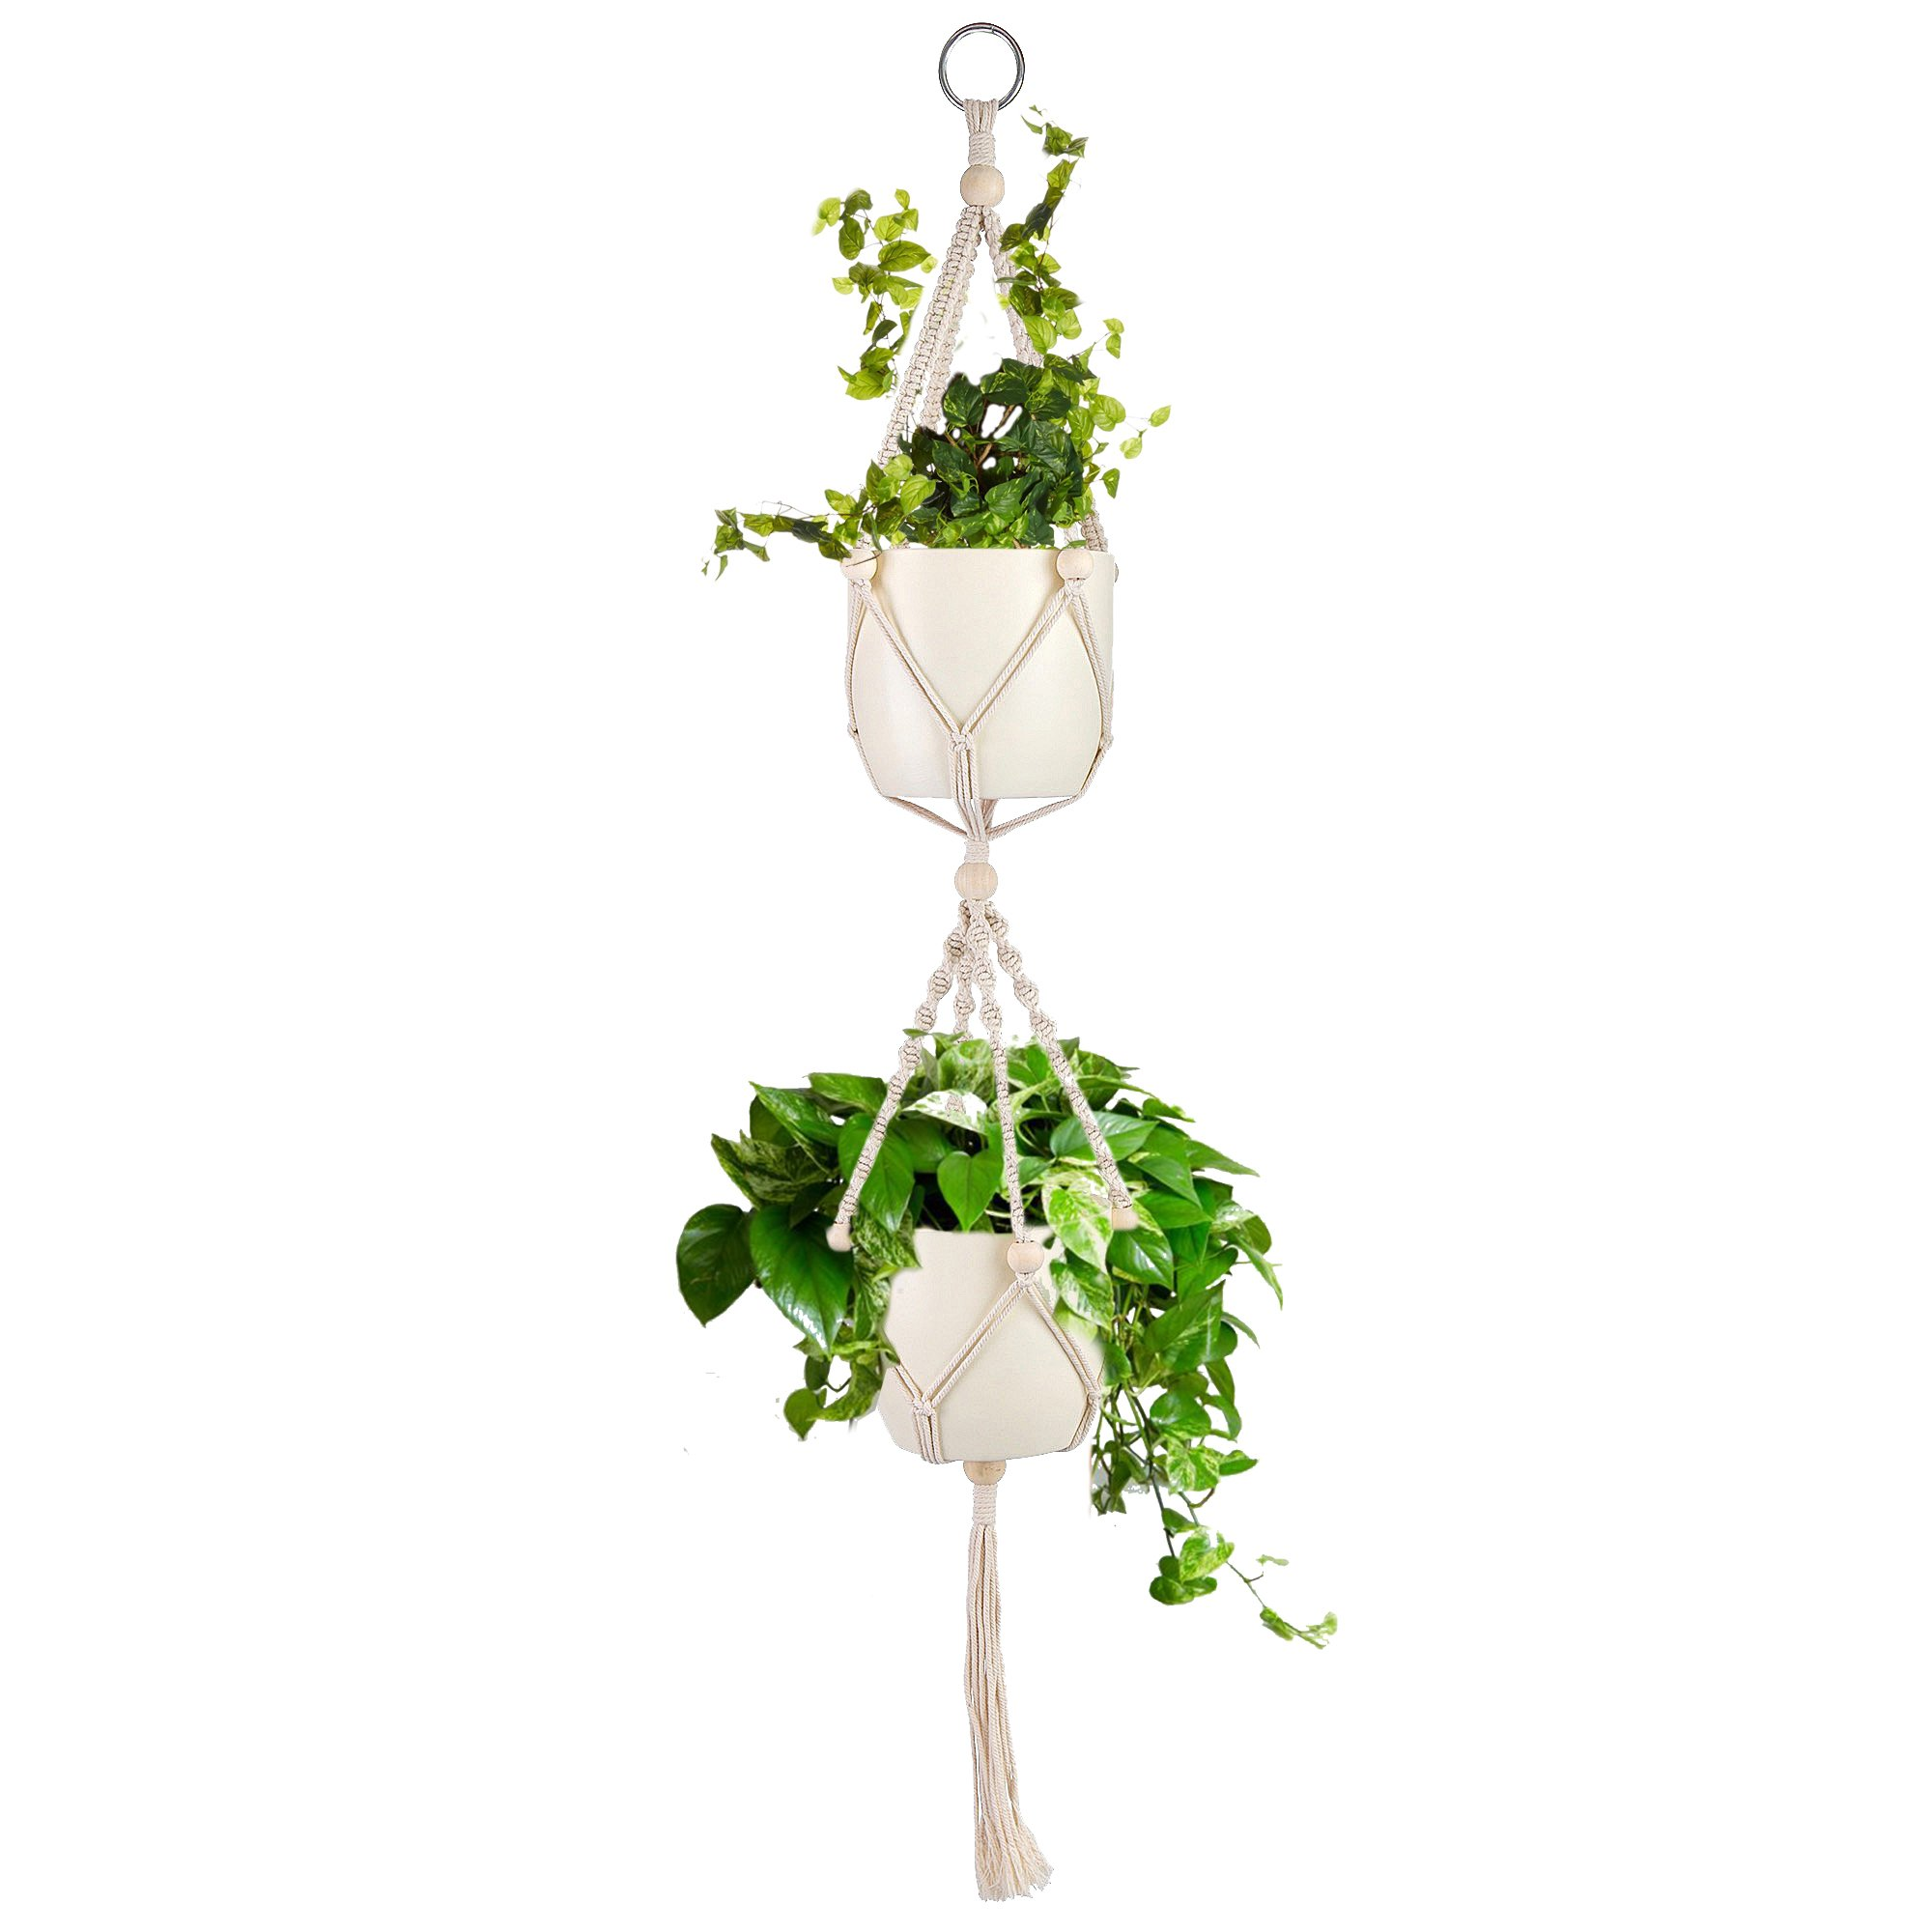 One Alpha Double Macrame Plant Hanger with Beads | Indoor & Outdoor Hanging Plant Basket | Plant Holder | 43 inches, 1.1 metres